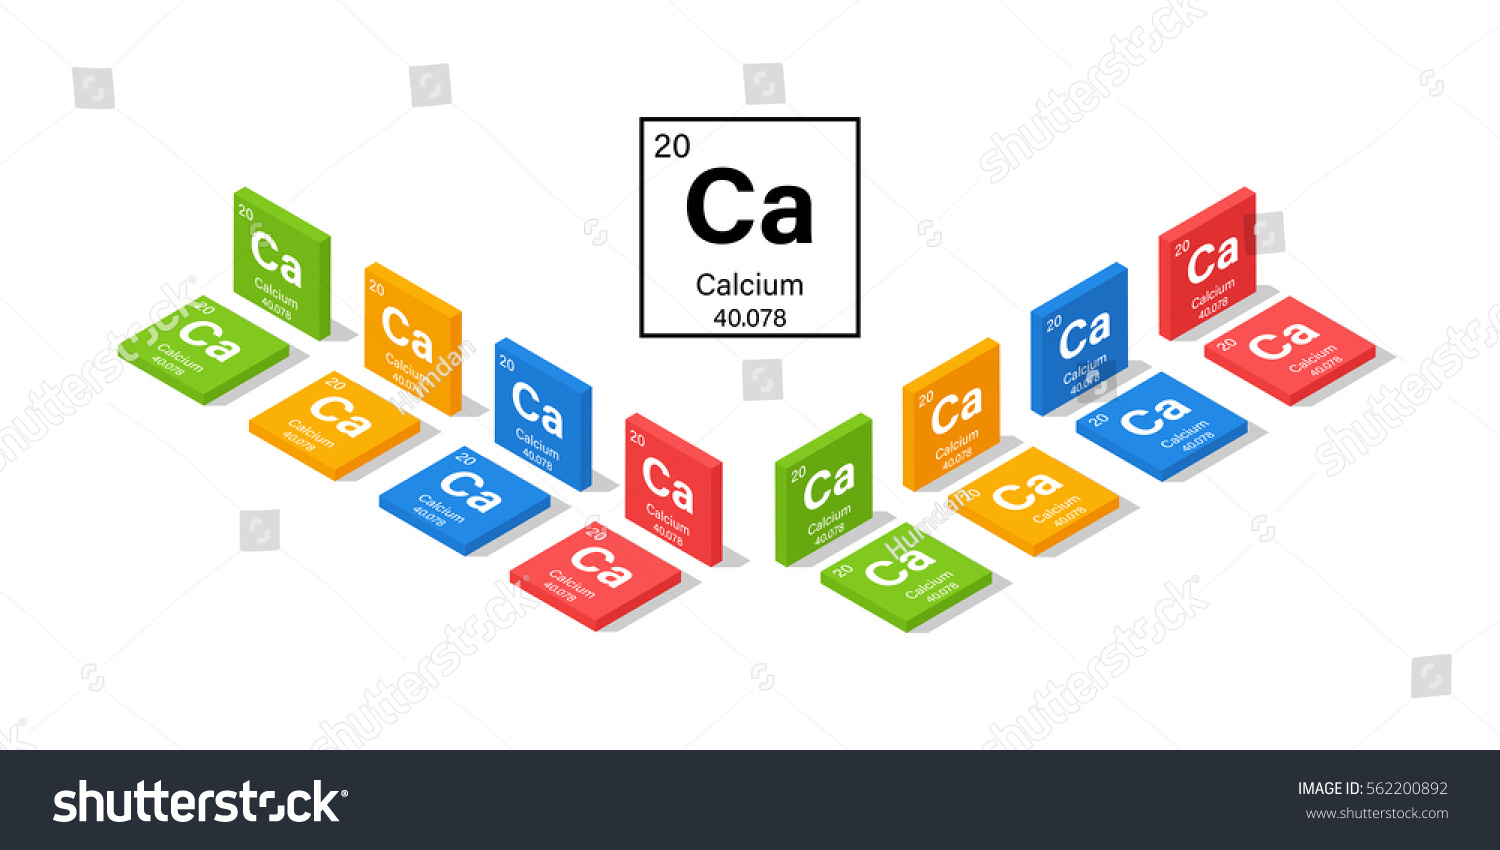 Elements periodic table calcium 3d isometric stock vector elements in the periodic table calcium 3d isometric style vector illustration gamestrikefo Choice Image